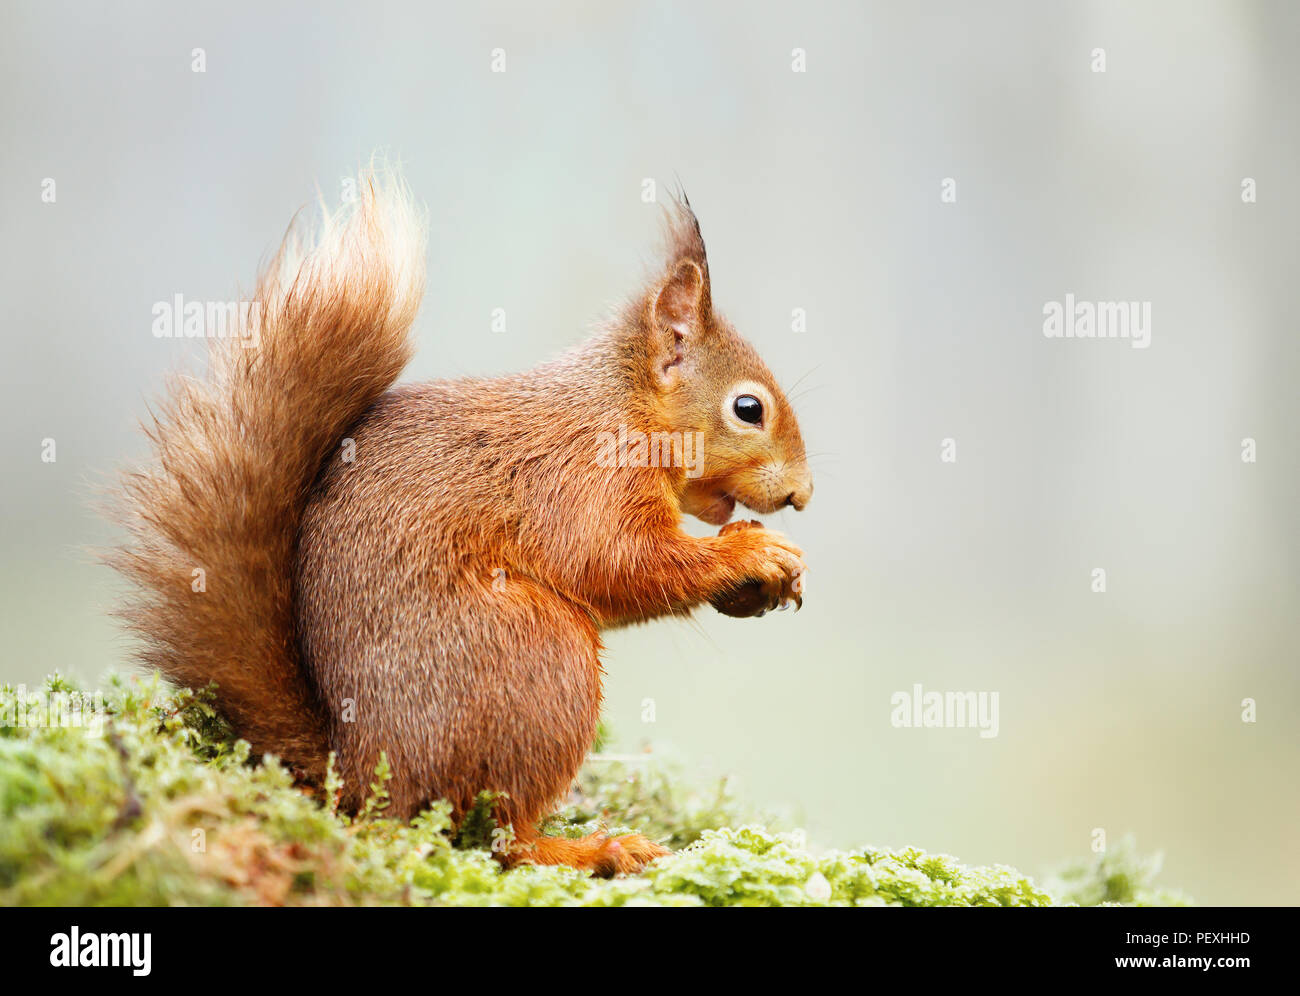 Isolated Eurasian red squirrel (Sciurus vulgaris) eating nut on a mossy log. - Stock Image